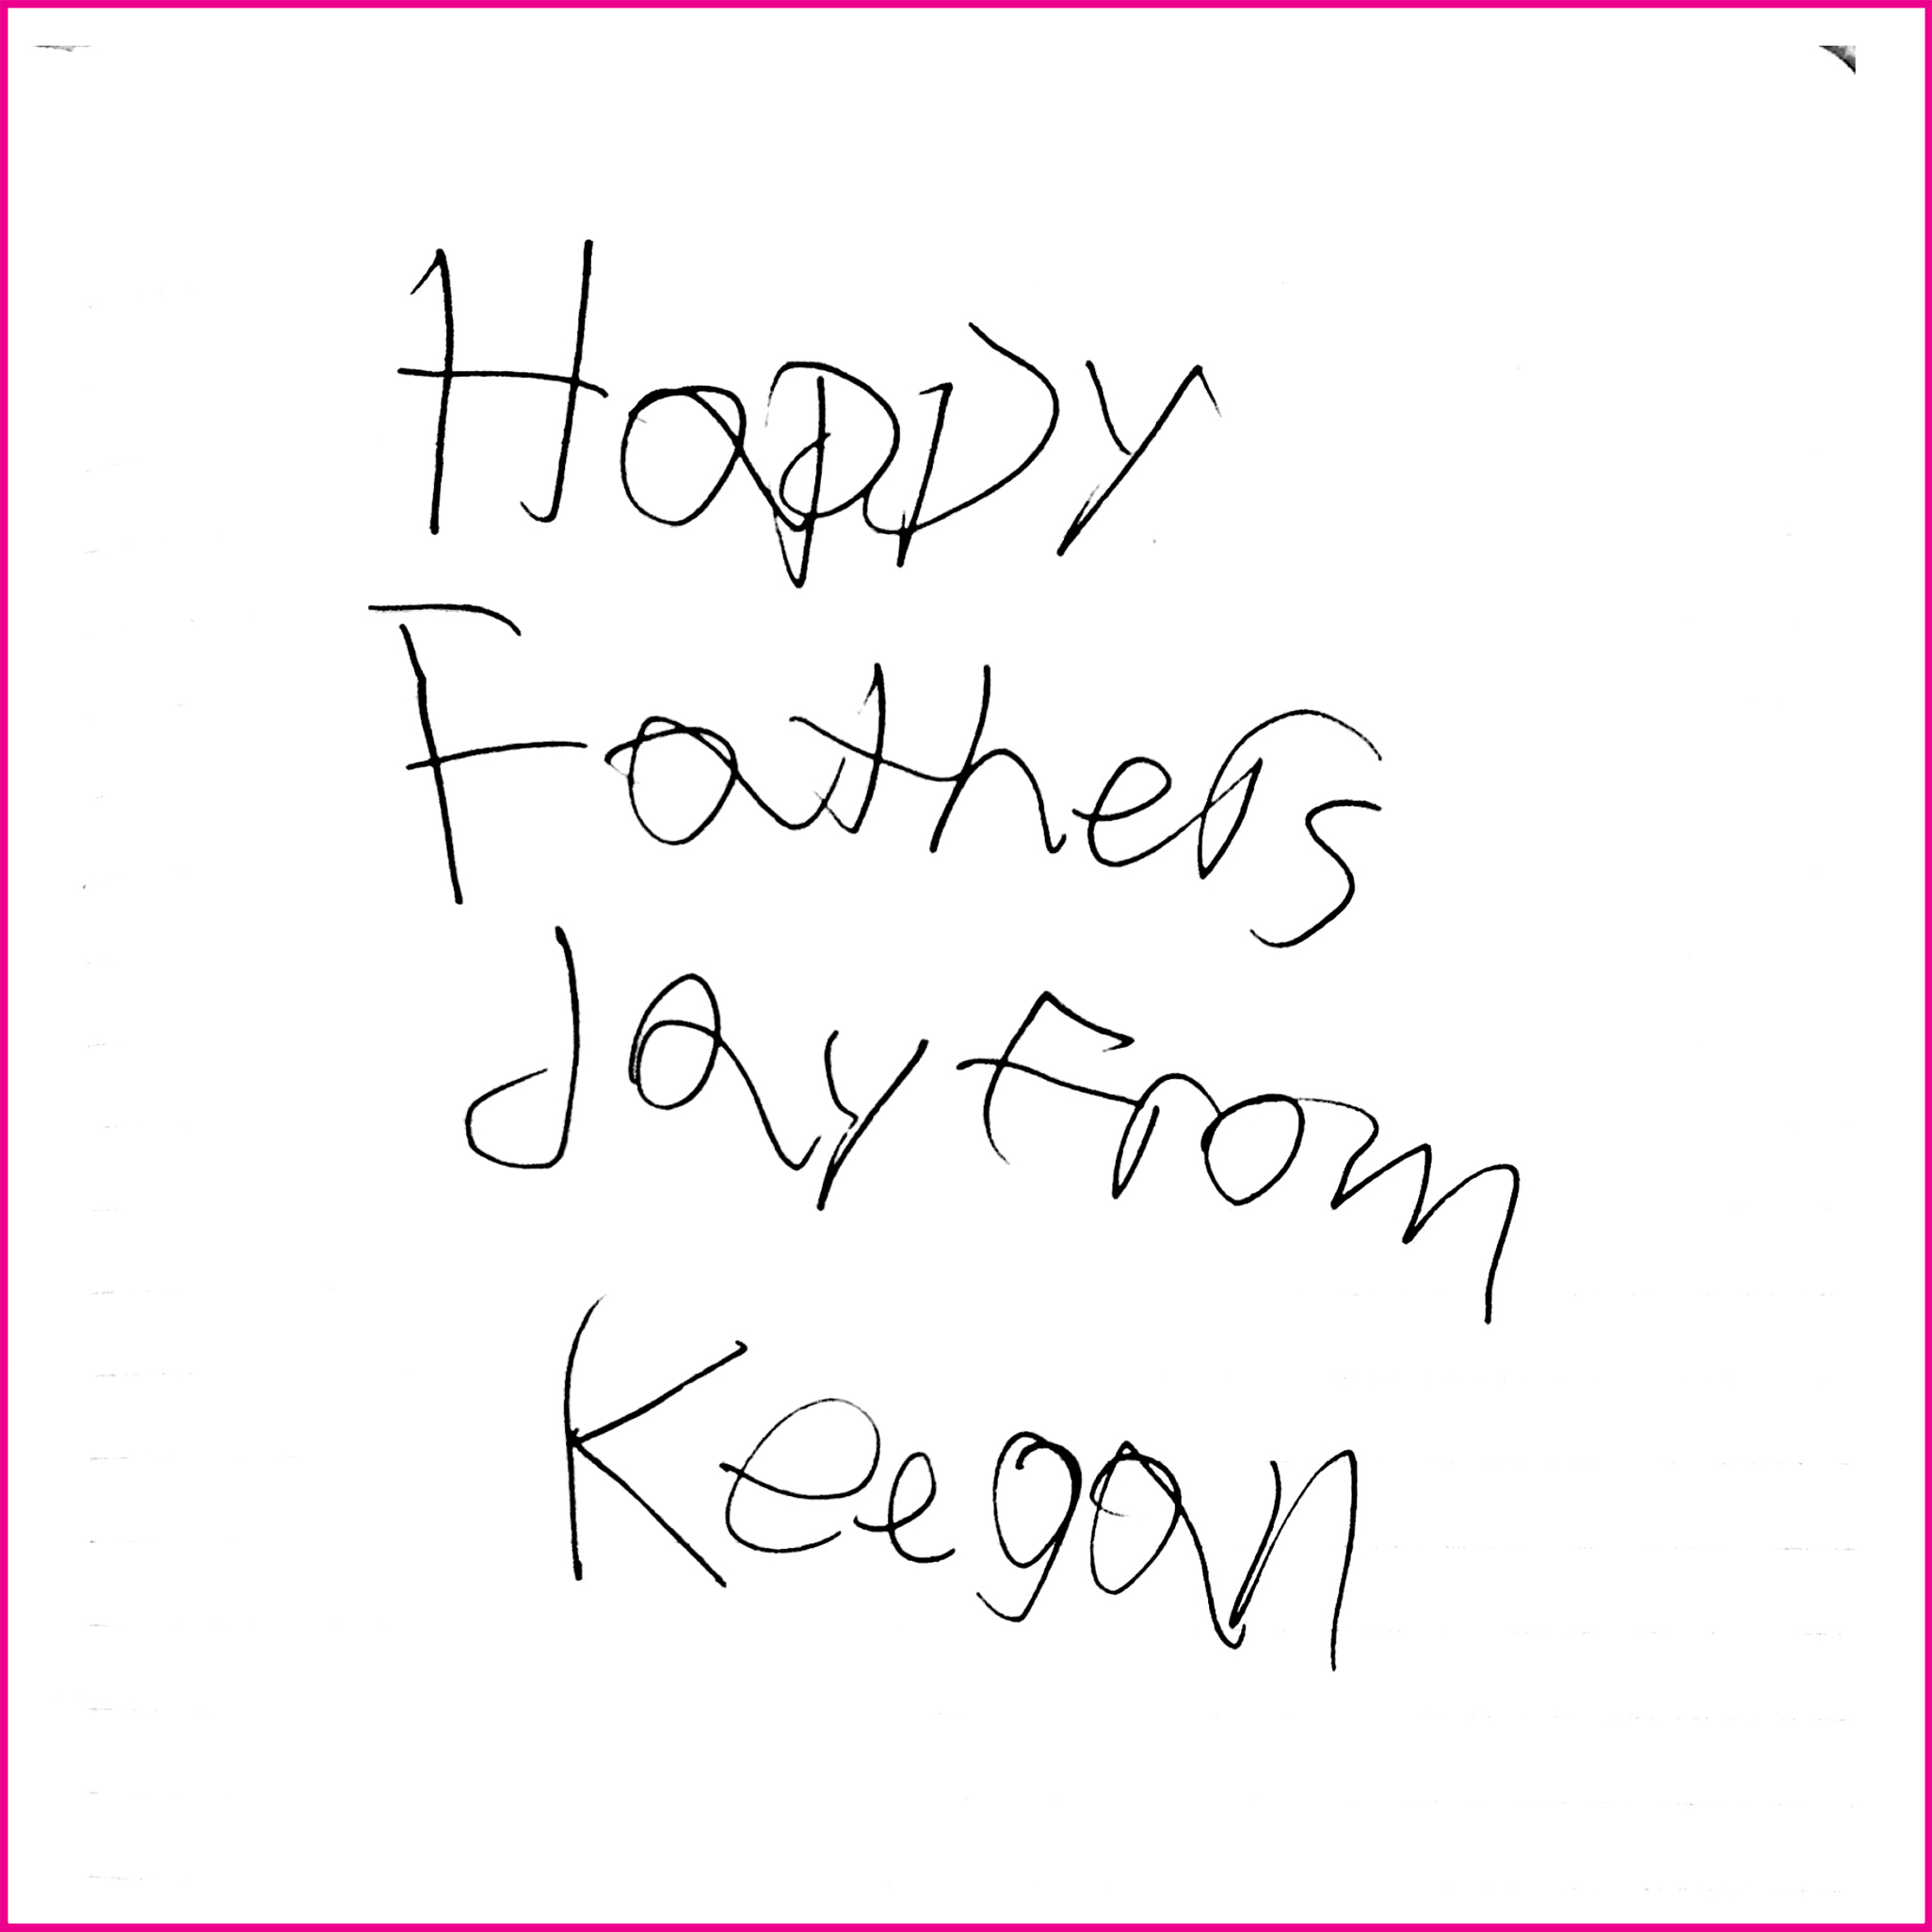 Happy Fathers day from Keegan